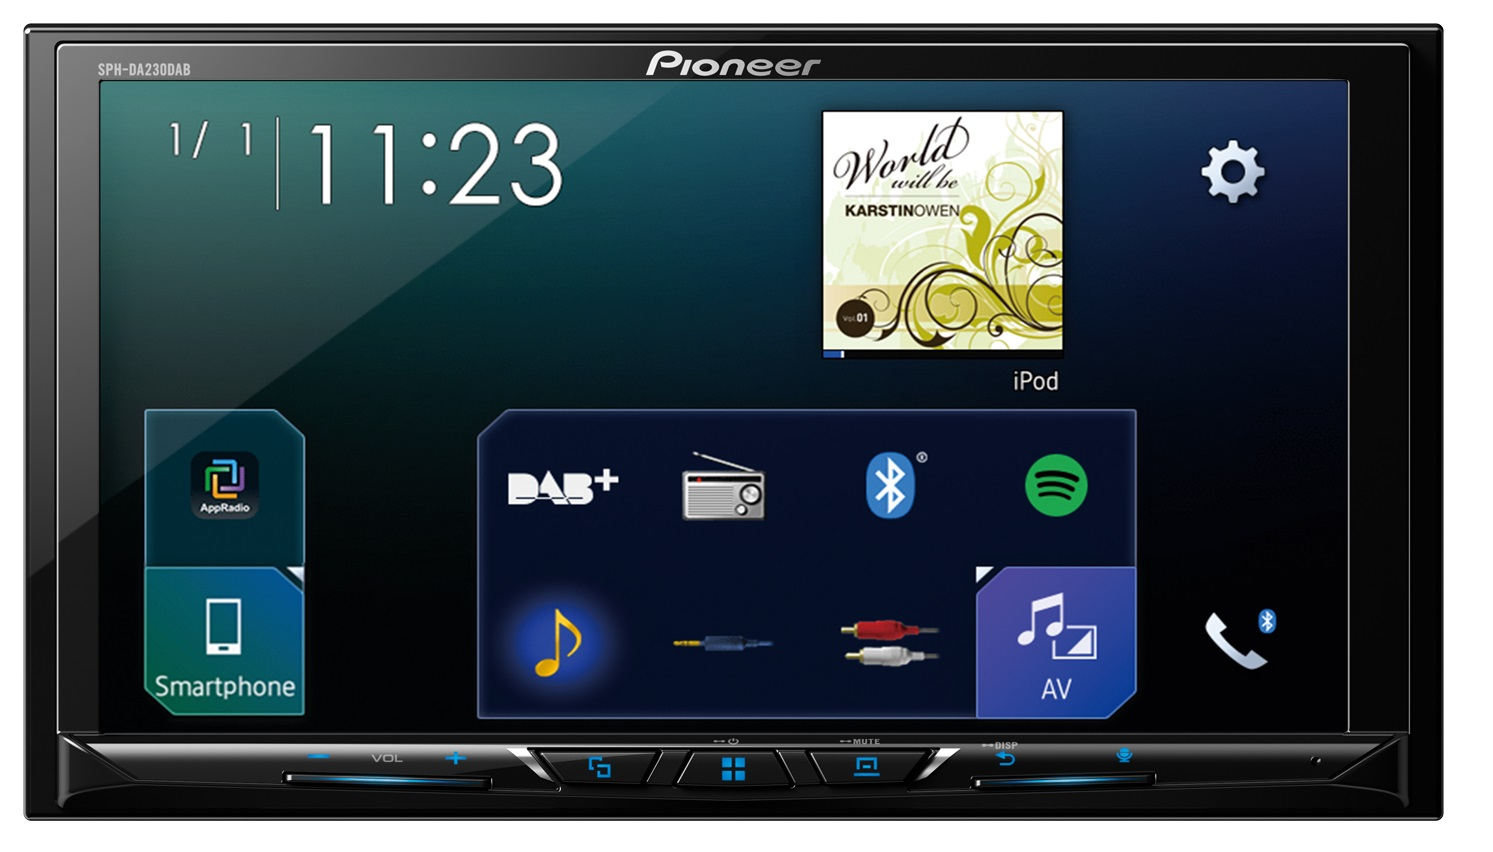 k b pioneer sph da230dab carplay dab radio og bluetooth til 3492 vejl 4999 med prismatch. Black Bedroom Furniture Sets. Home Design Ideas